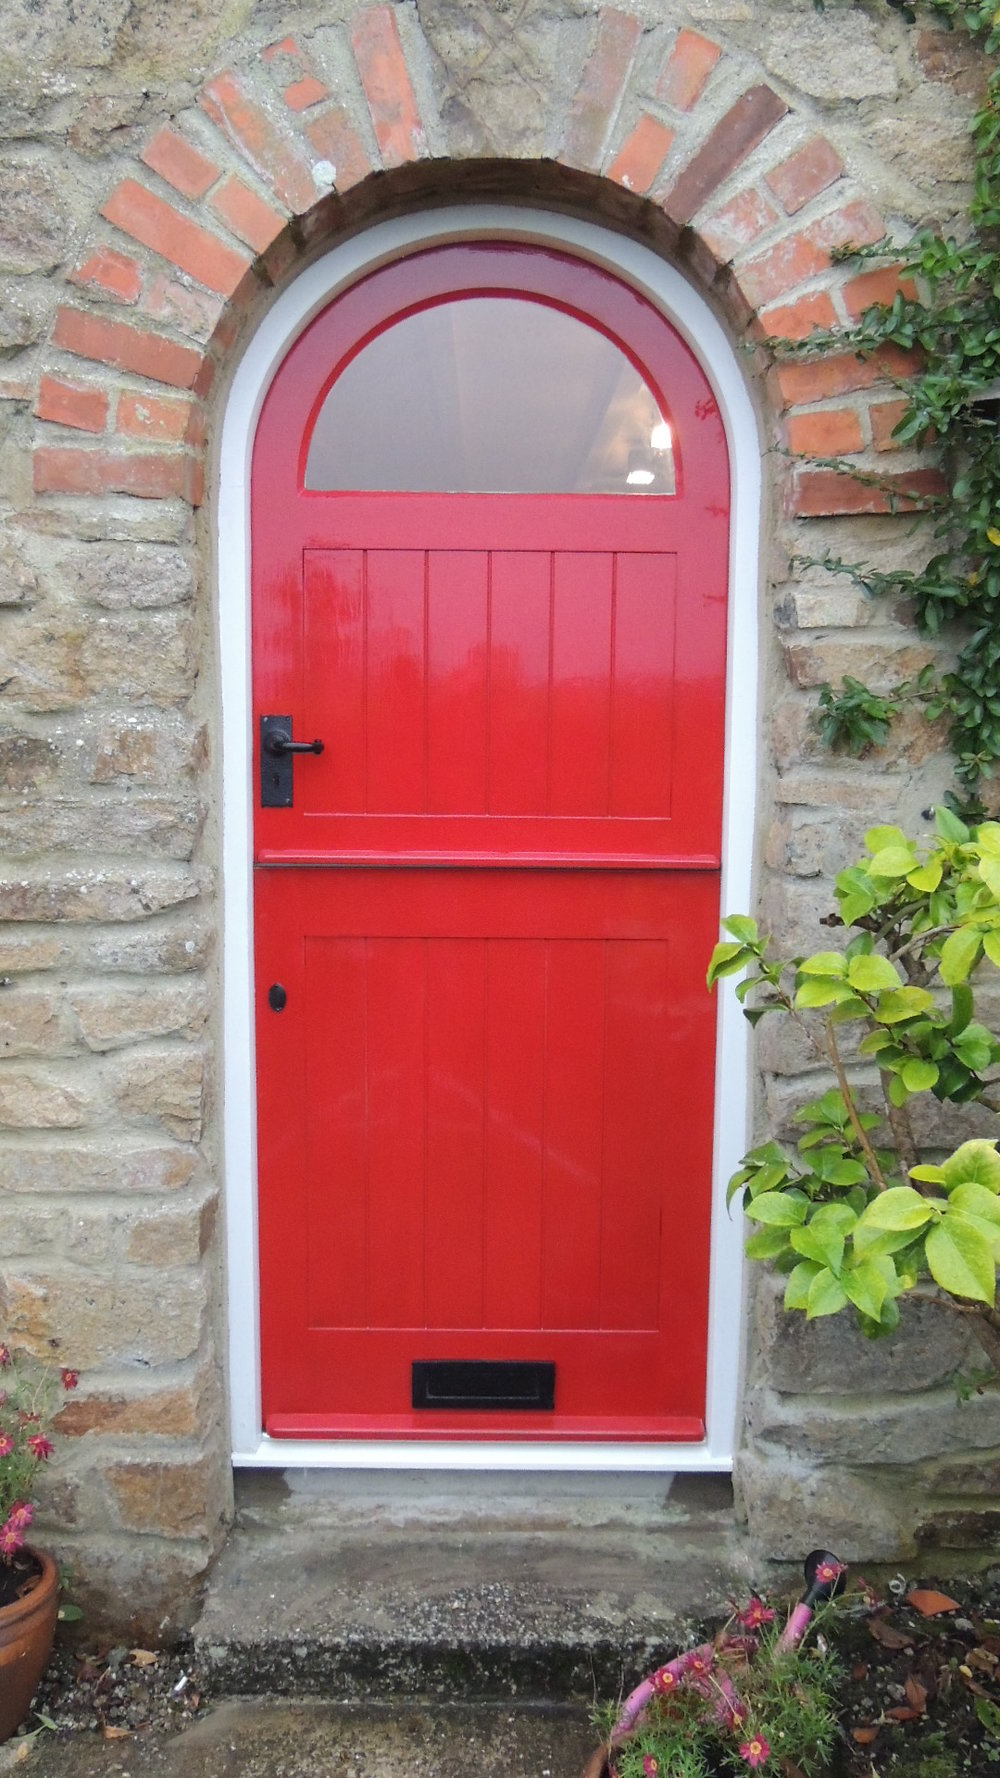 Bespoke wooden door joiners in Falmouth